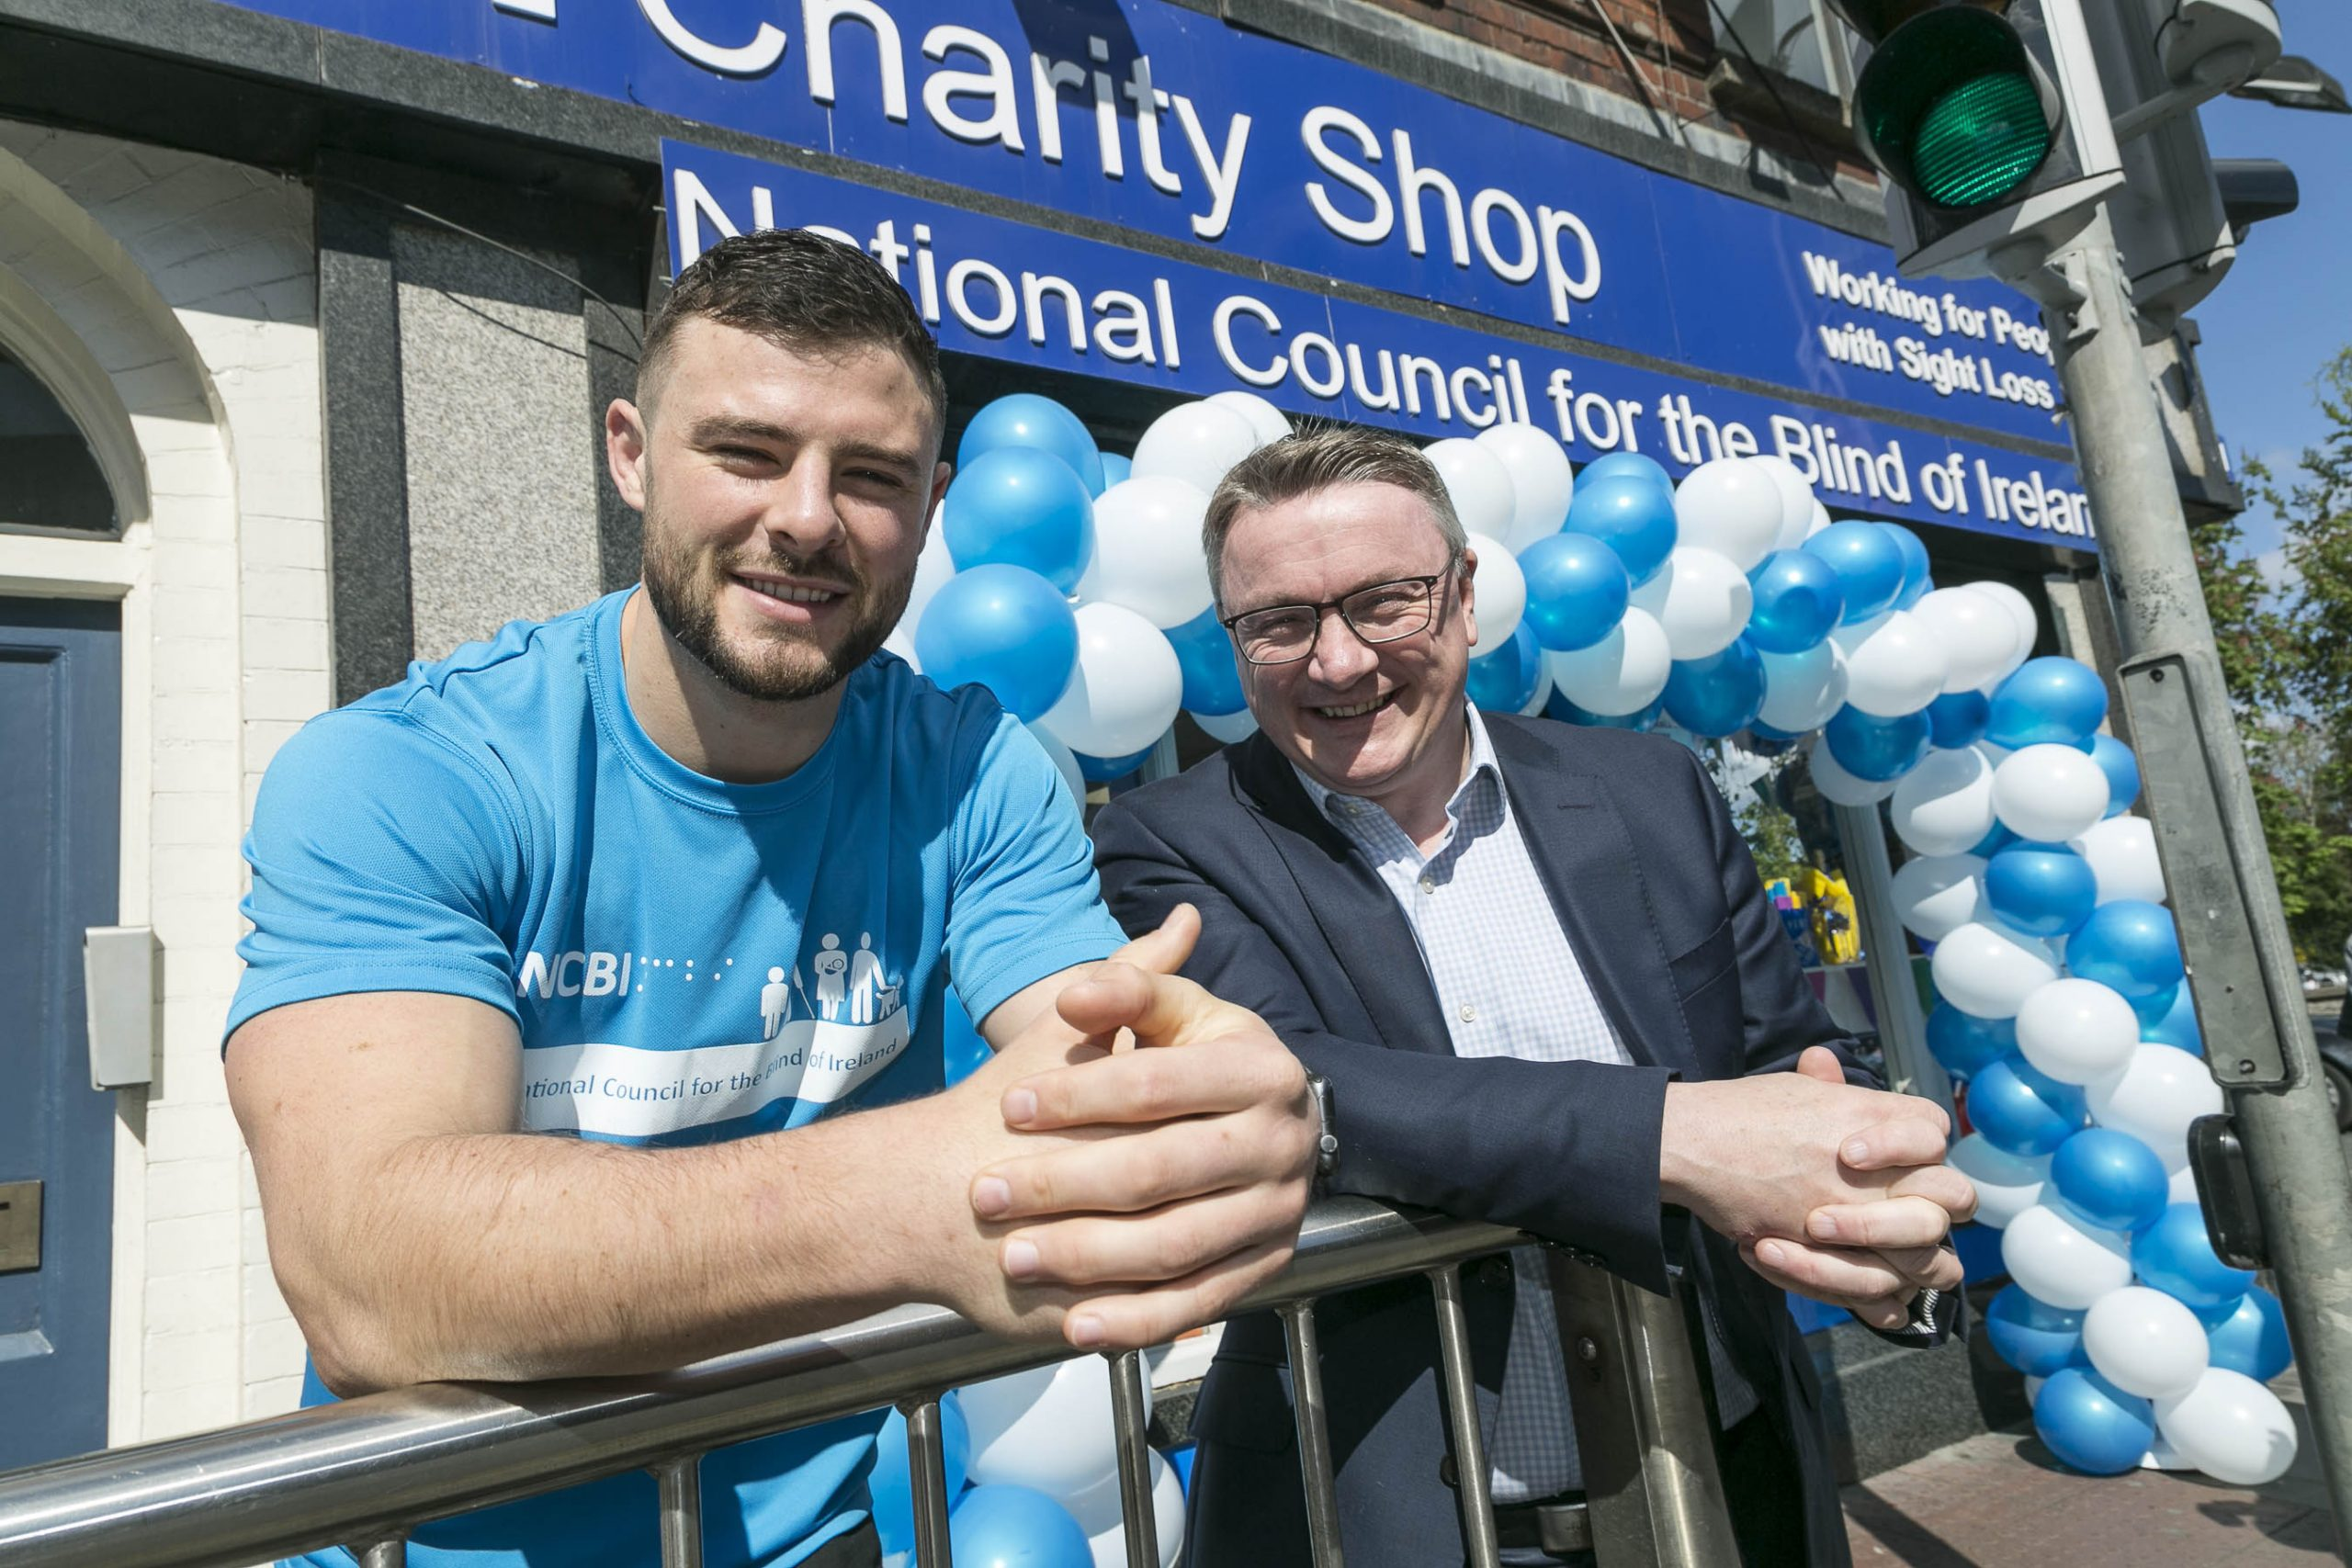 Robbie Henshaw and Chris White CEO of NCBI, At official opening of the Rathmines Shop